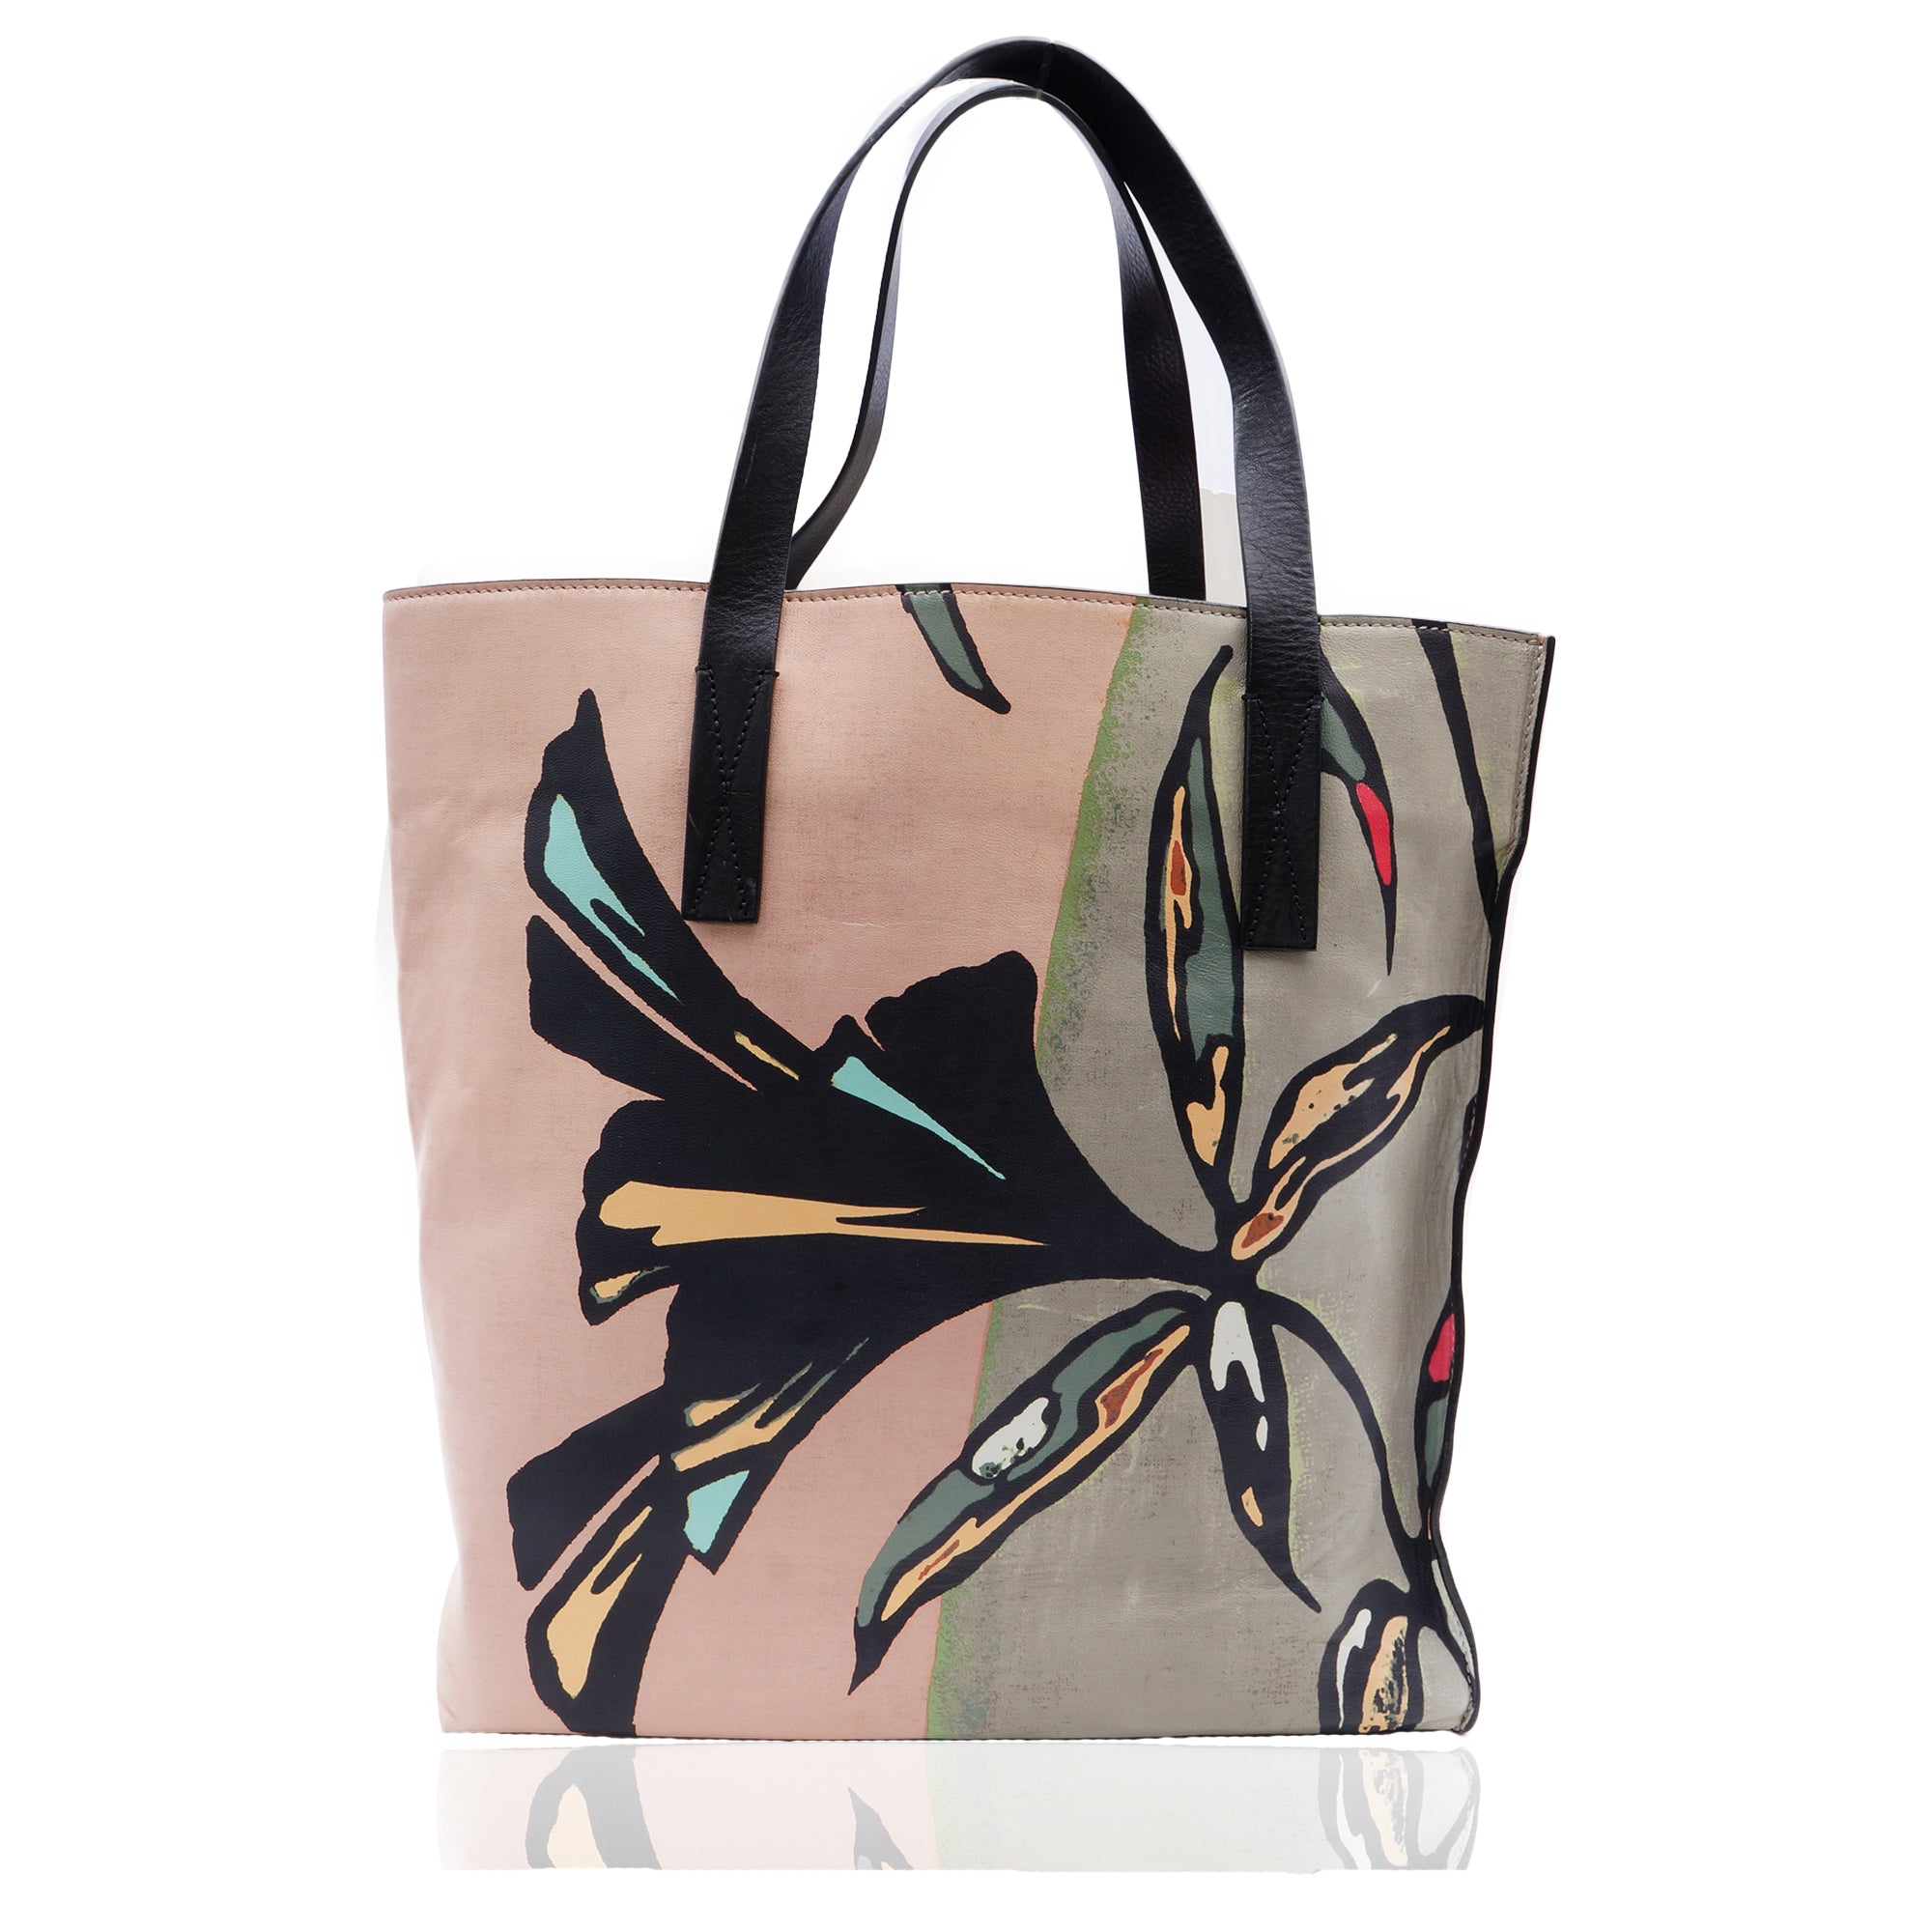 031bf440773 MARNI FLORAL PRINTED LEATHER TOTE BAG Shop the best value on authentic  designer used preowned consignment ...